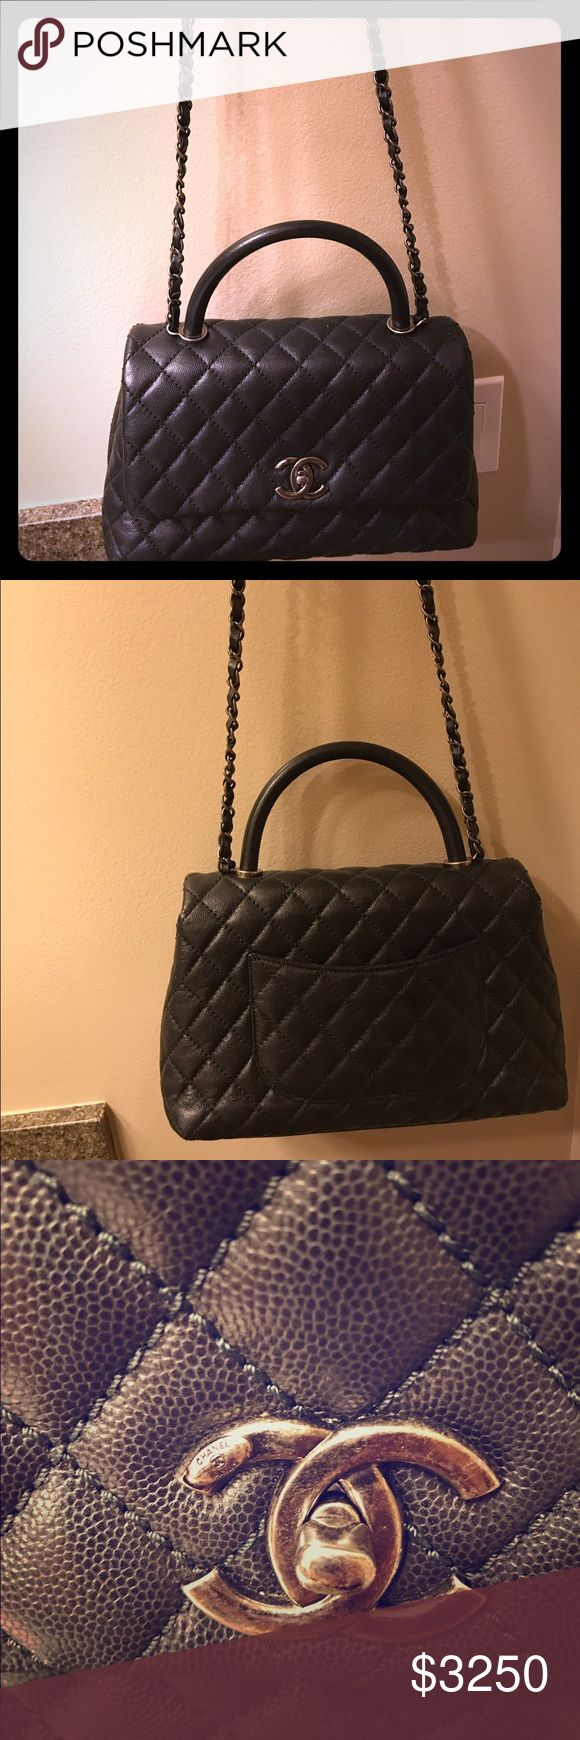 Chanel 2015 fall edition handbag The bag was purchased in a Chanel store in San Antonio, TX. Limited edition, durable, used for a little over a year. CHANEL Bags Shoulder Bags